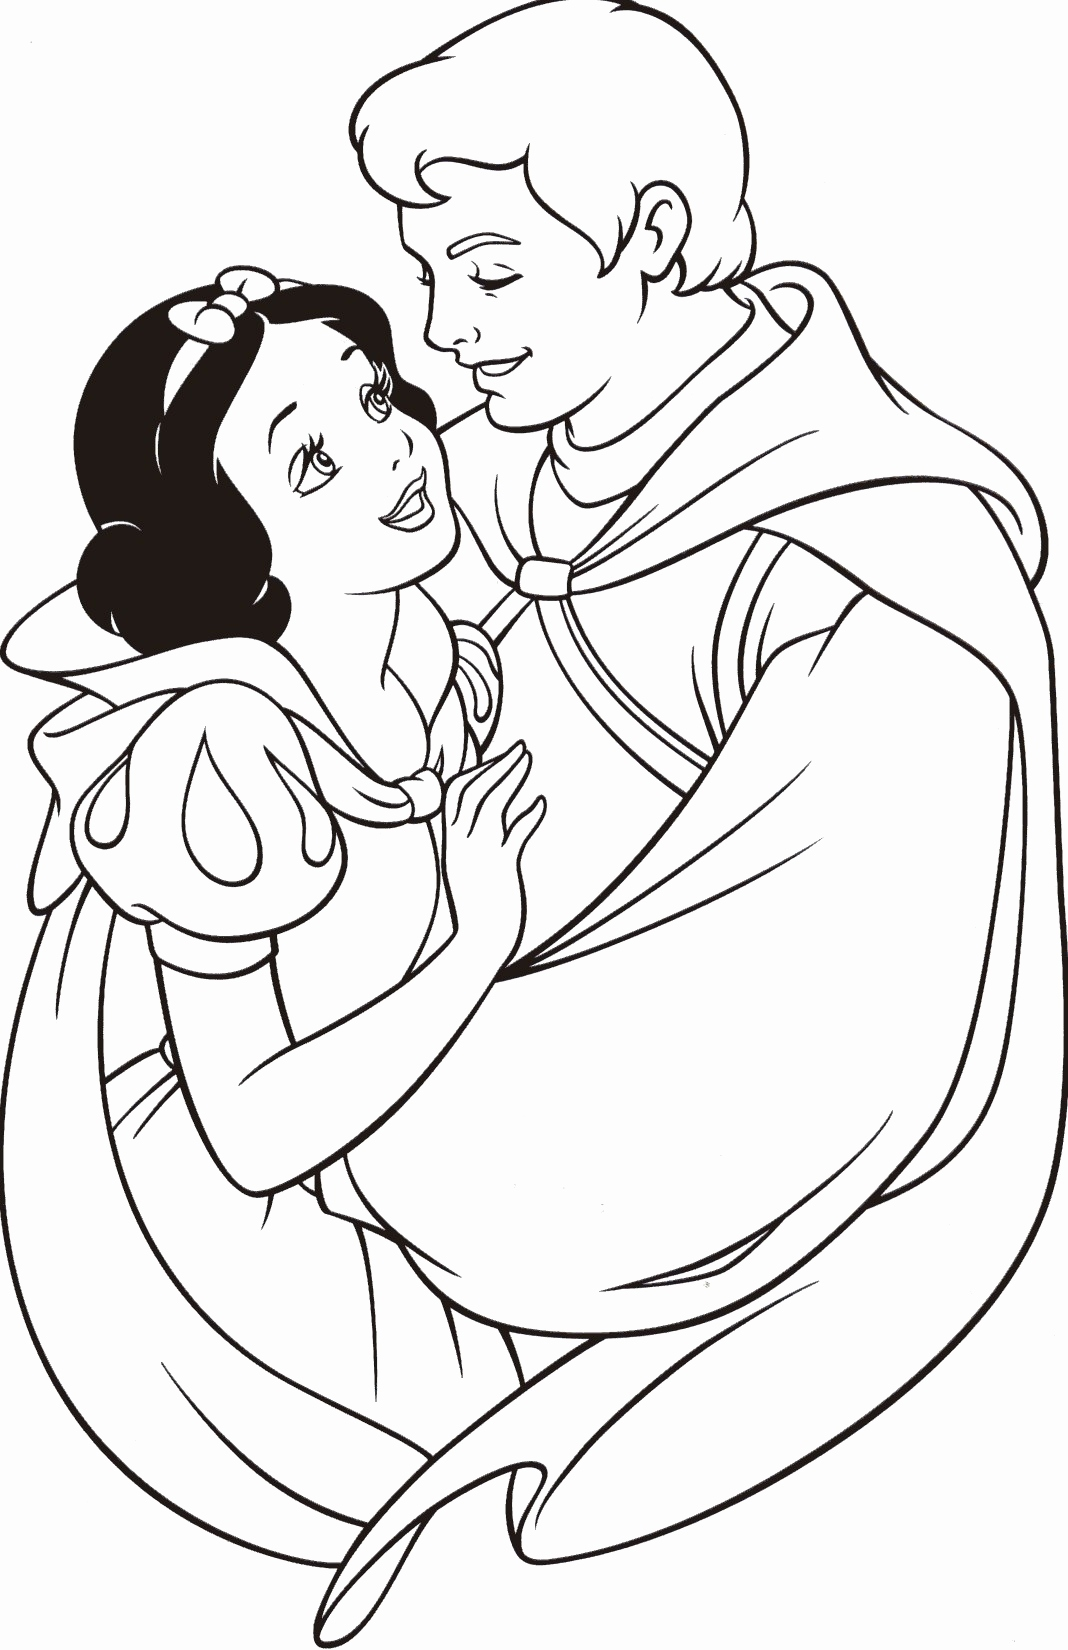 1068x1650 Princess Ariel Coloring Pages Best Of Awesome Prince Charming